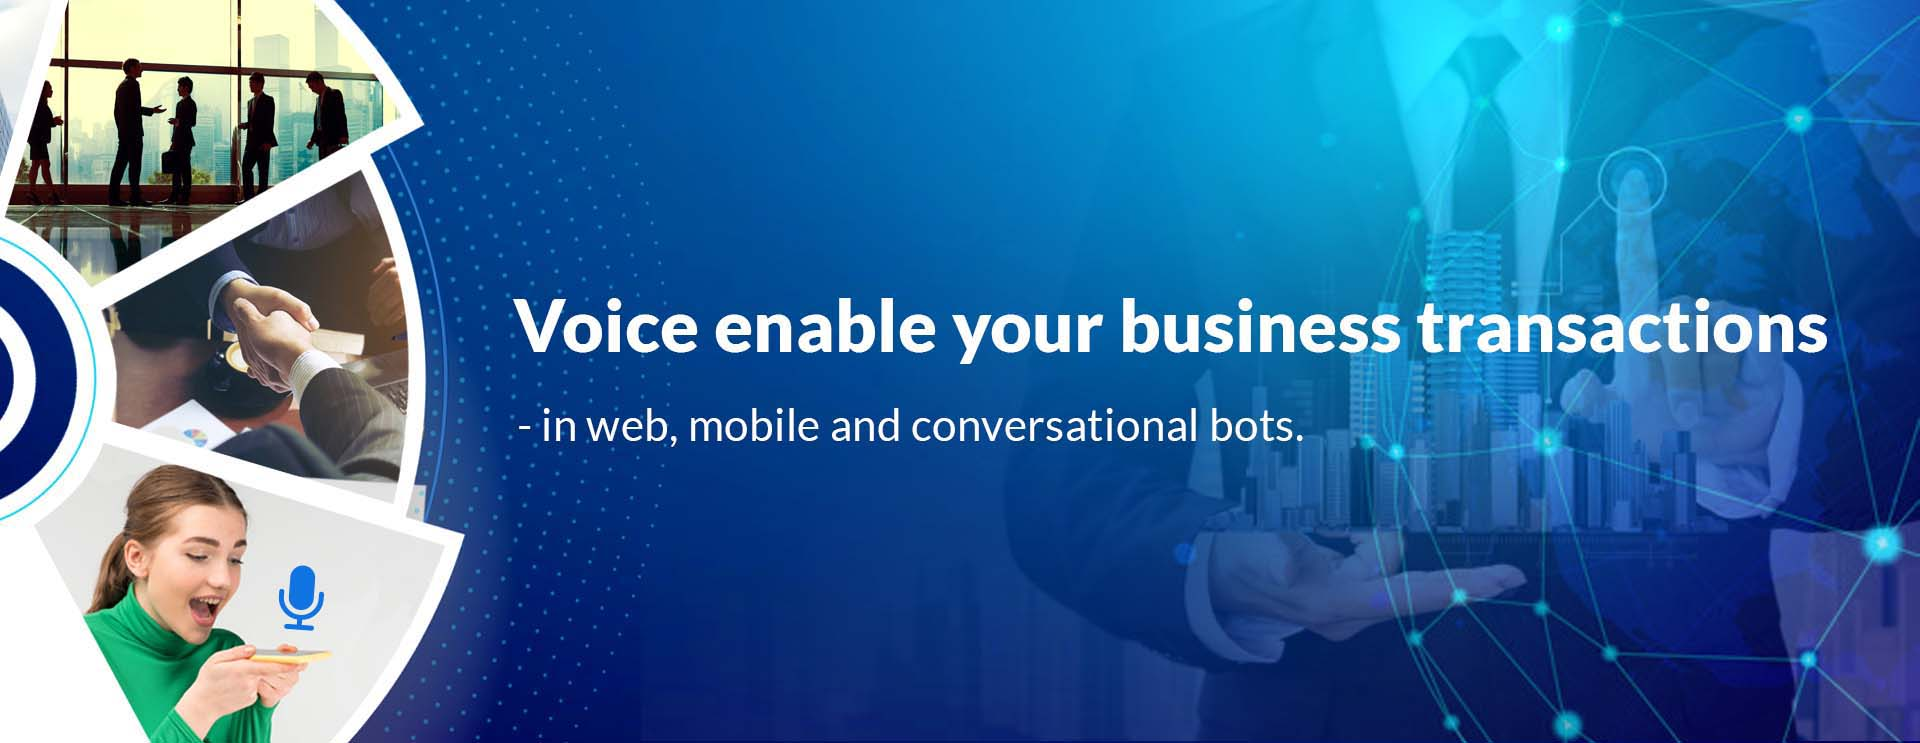 Voice enabled web and mobile bots